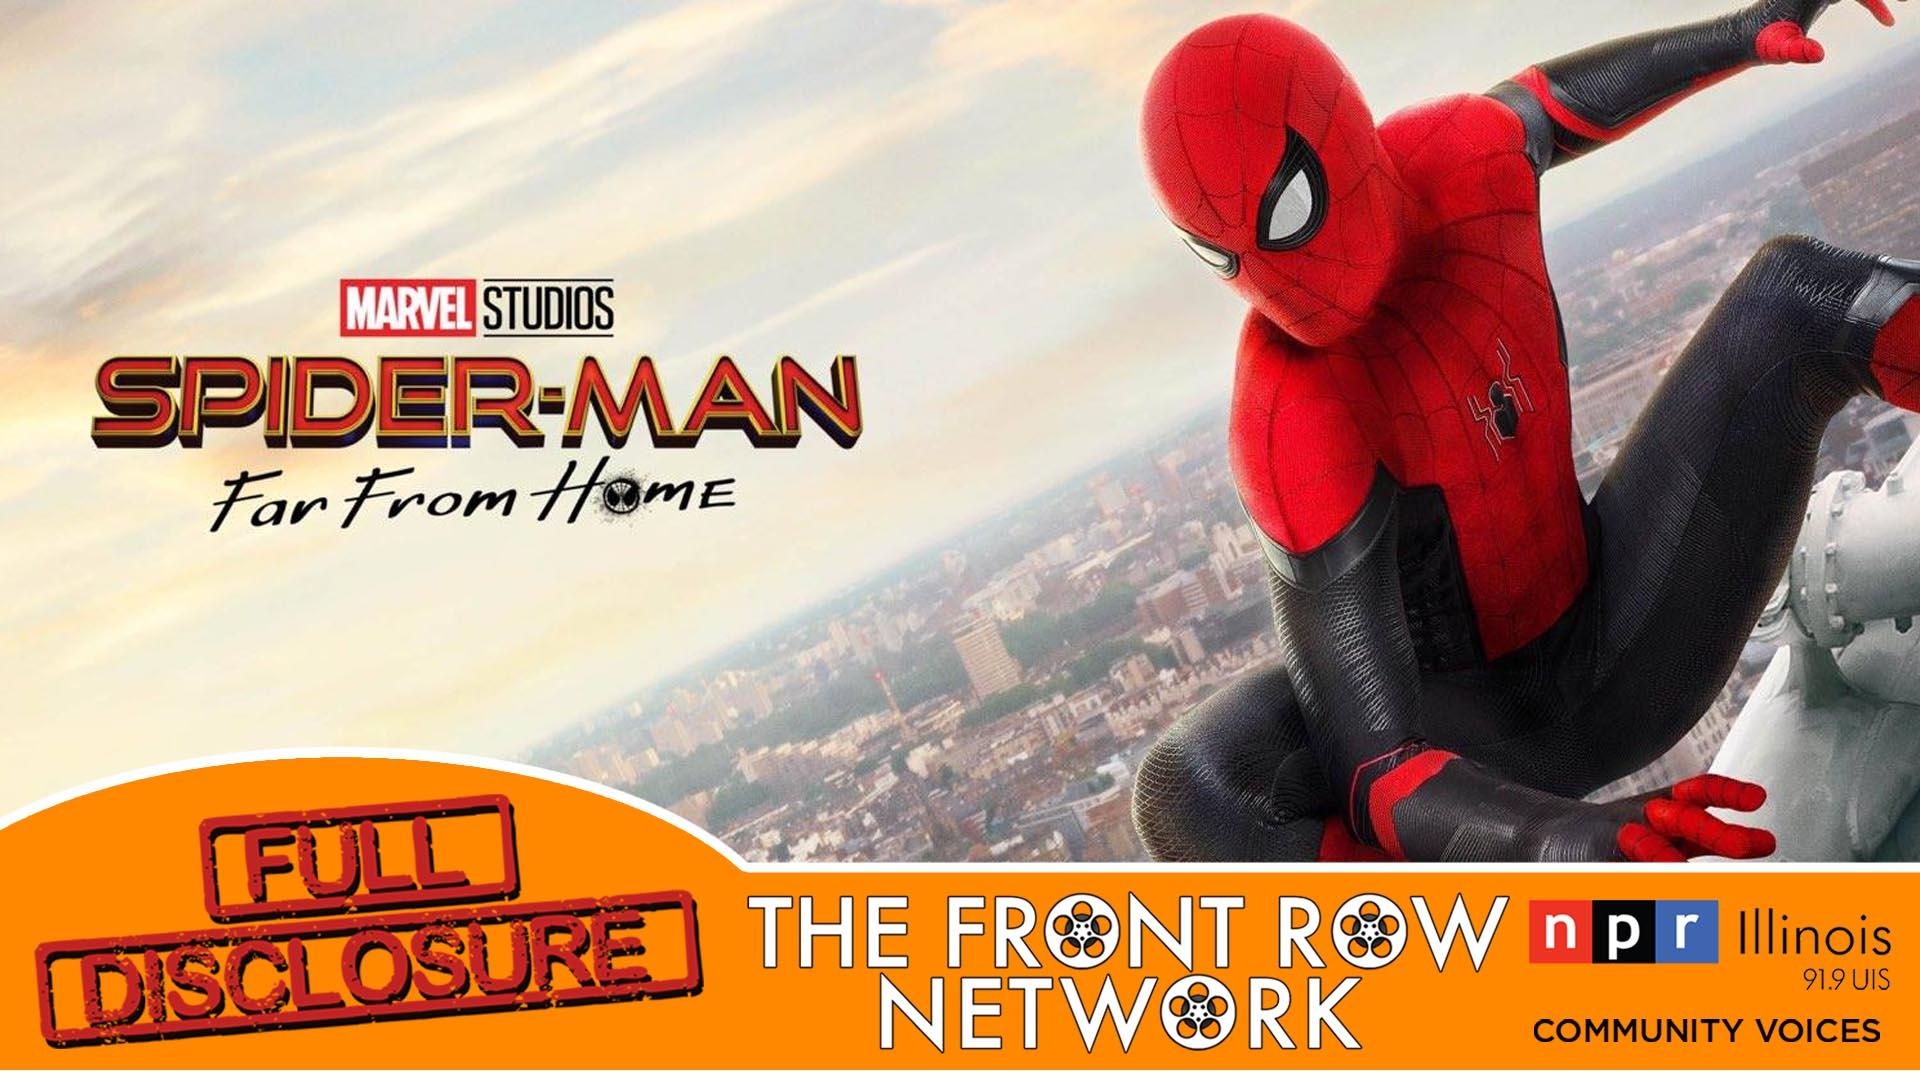 FULL DISCLOSURE - Spider-Man: Far From Home | NPR Illinois